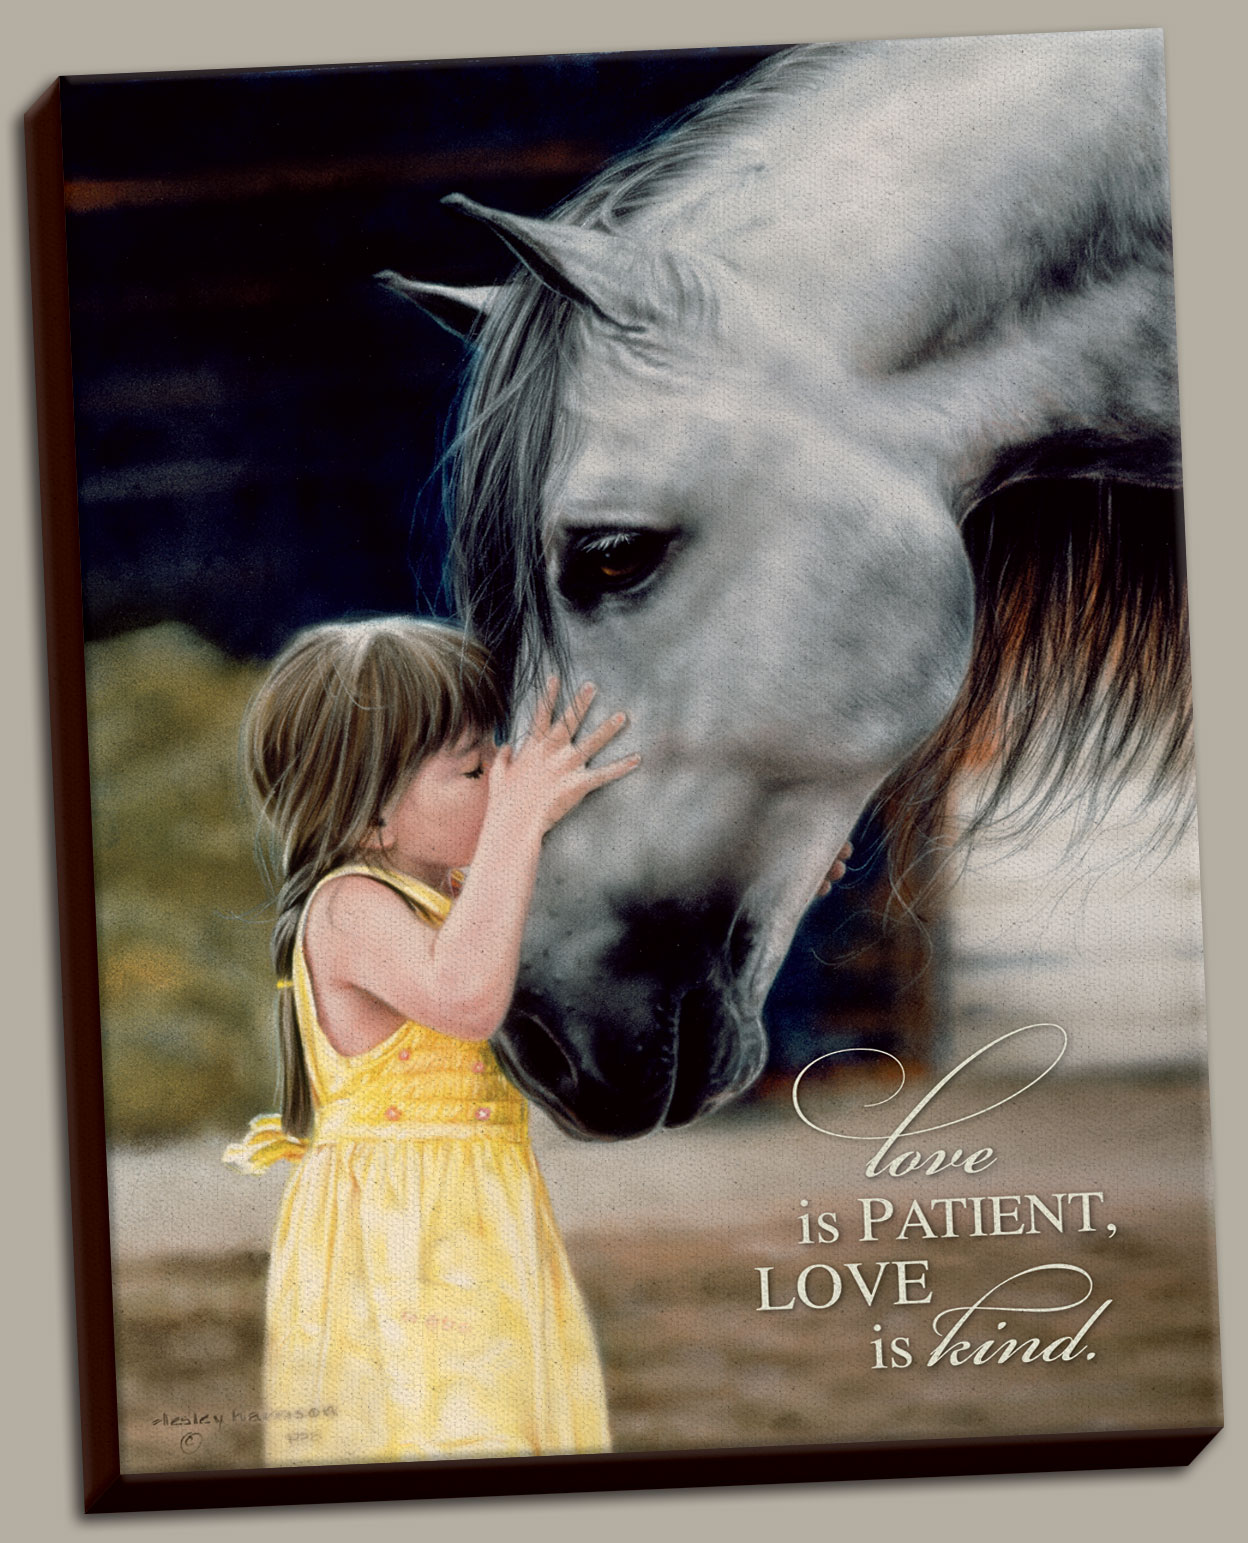 The Kiss By Lesley Harrison A Girl Print 12x16 A Horse